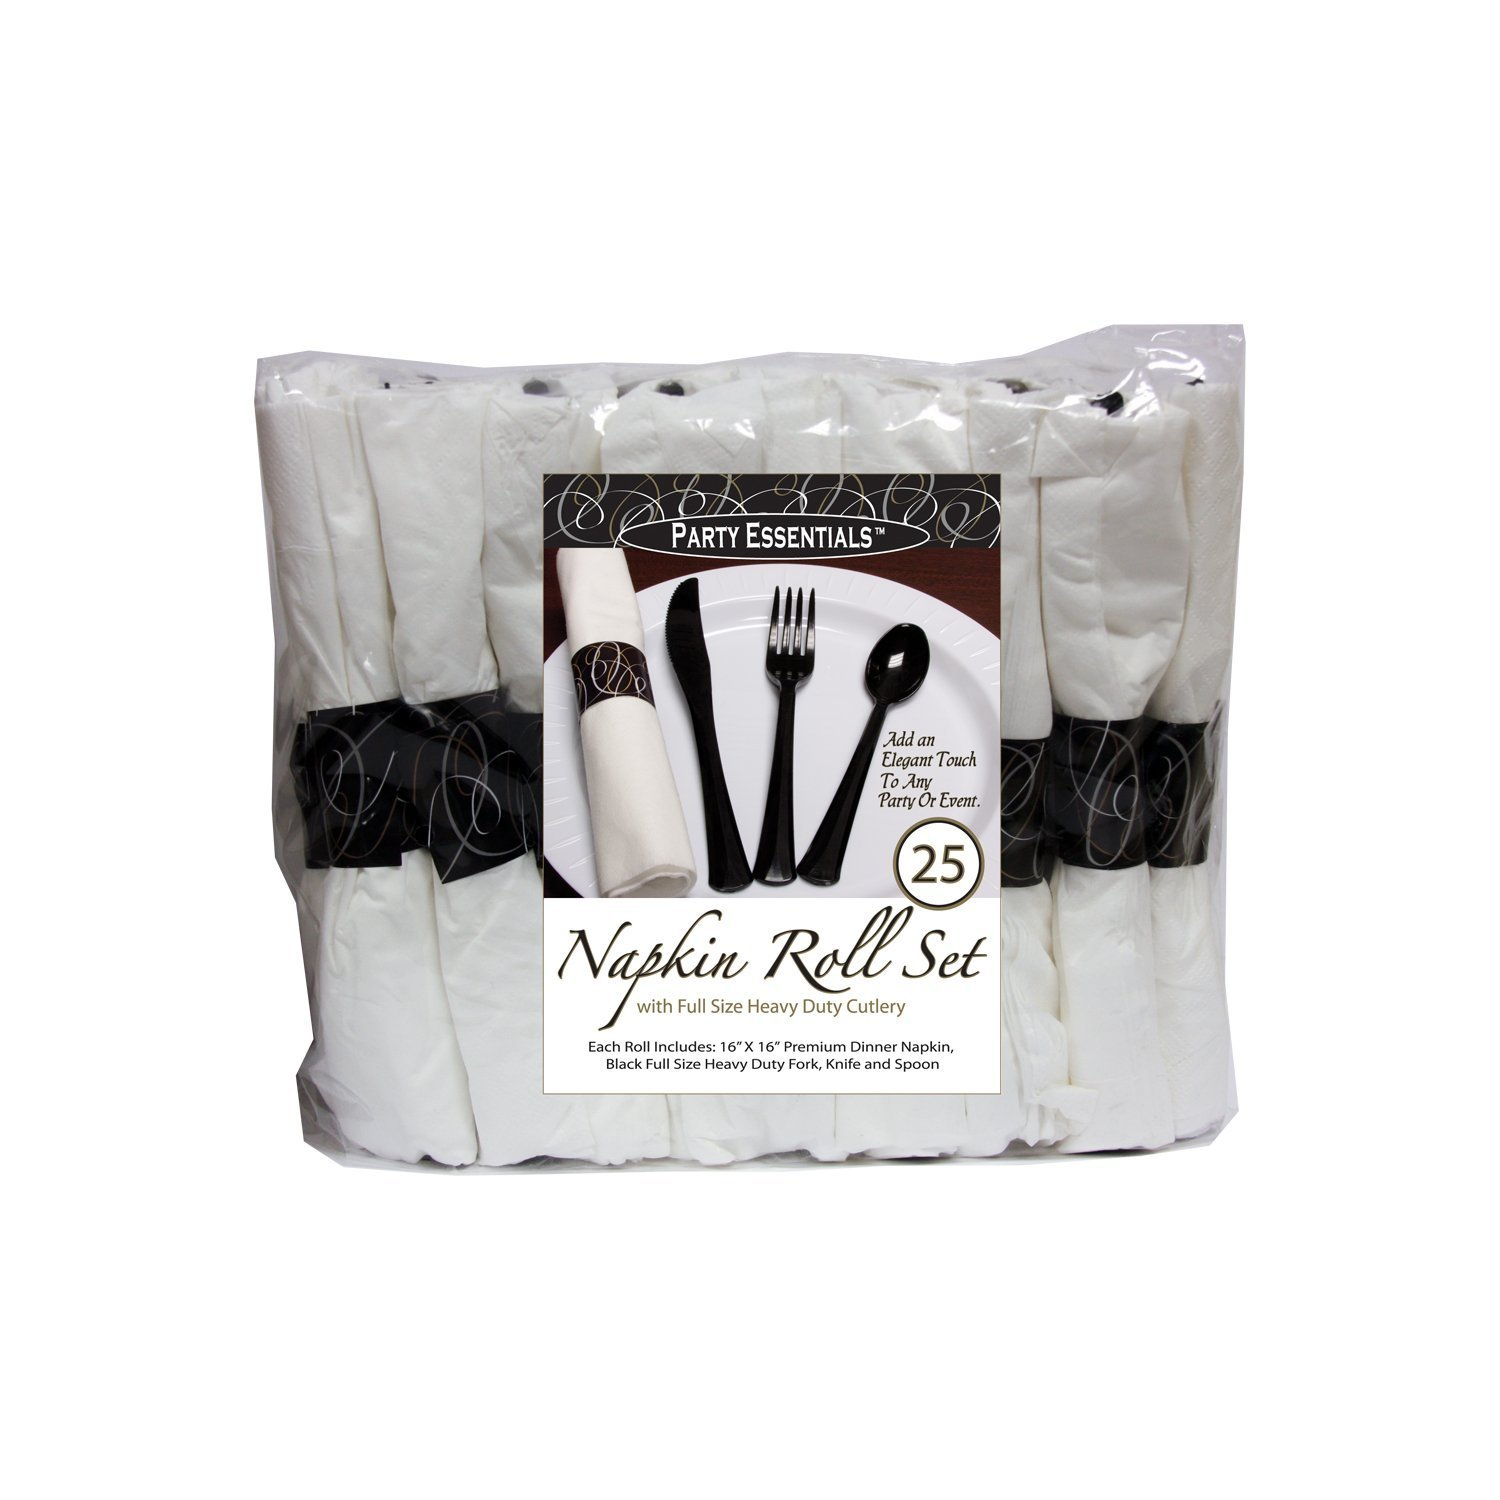 Party Essentials N501732 Napkin Rolls with Extra Heavy Duty Cutlery BlackWhite 25 Roll Count